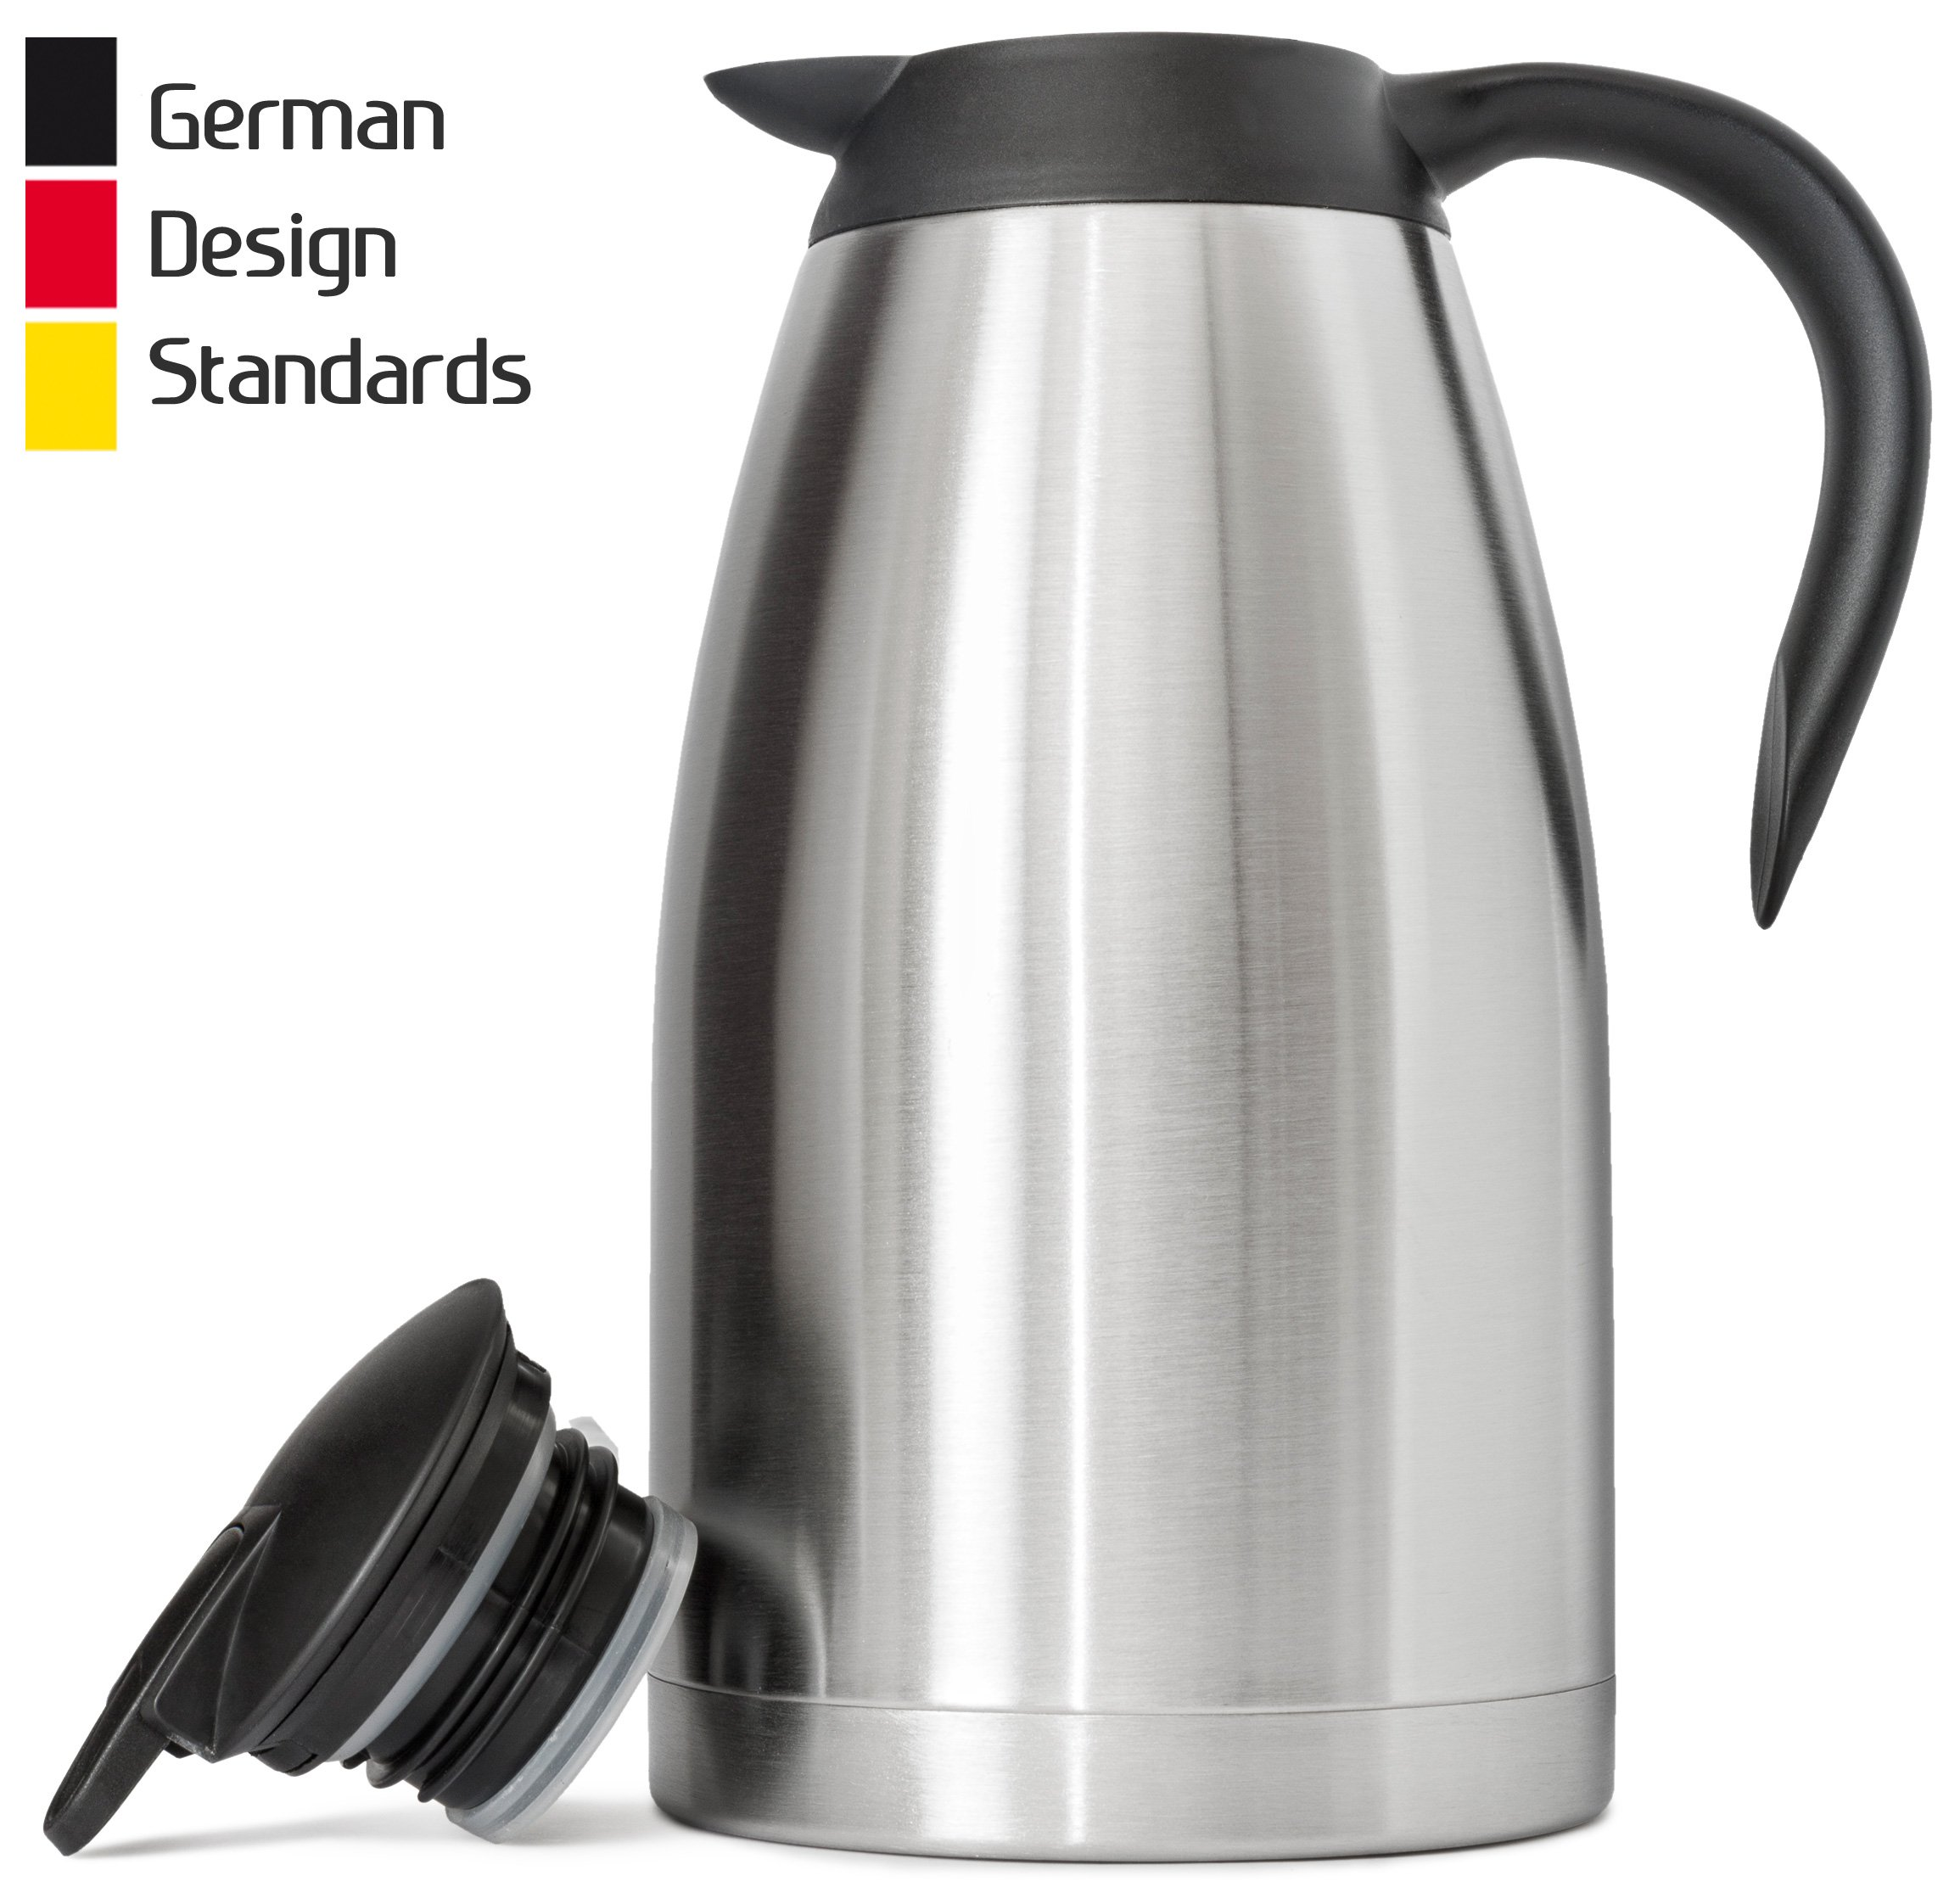 New 68 Oz (2 Liter) German-Designed Thermal Coffee Carafe | Stainless Steel Insulated Double Wall | BPA-Free Vacuum Thermos | Effectively Keeps Beverages Hot/Warm (up to 12 Hrs) or Cold (up to 24 Hrs)